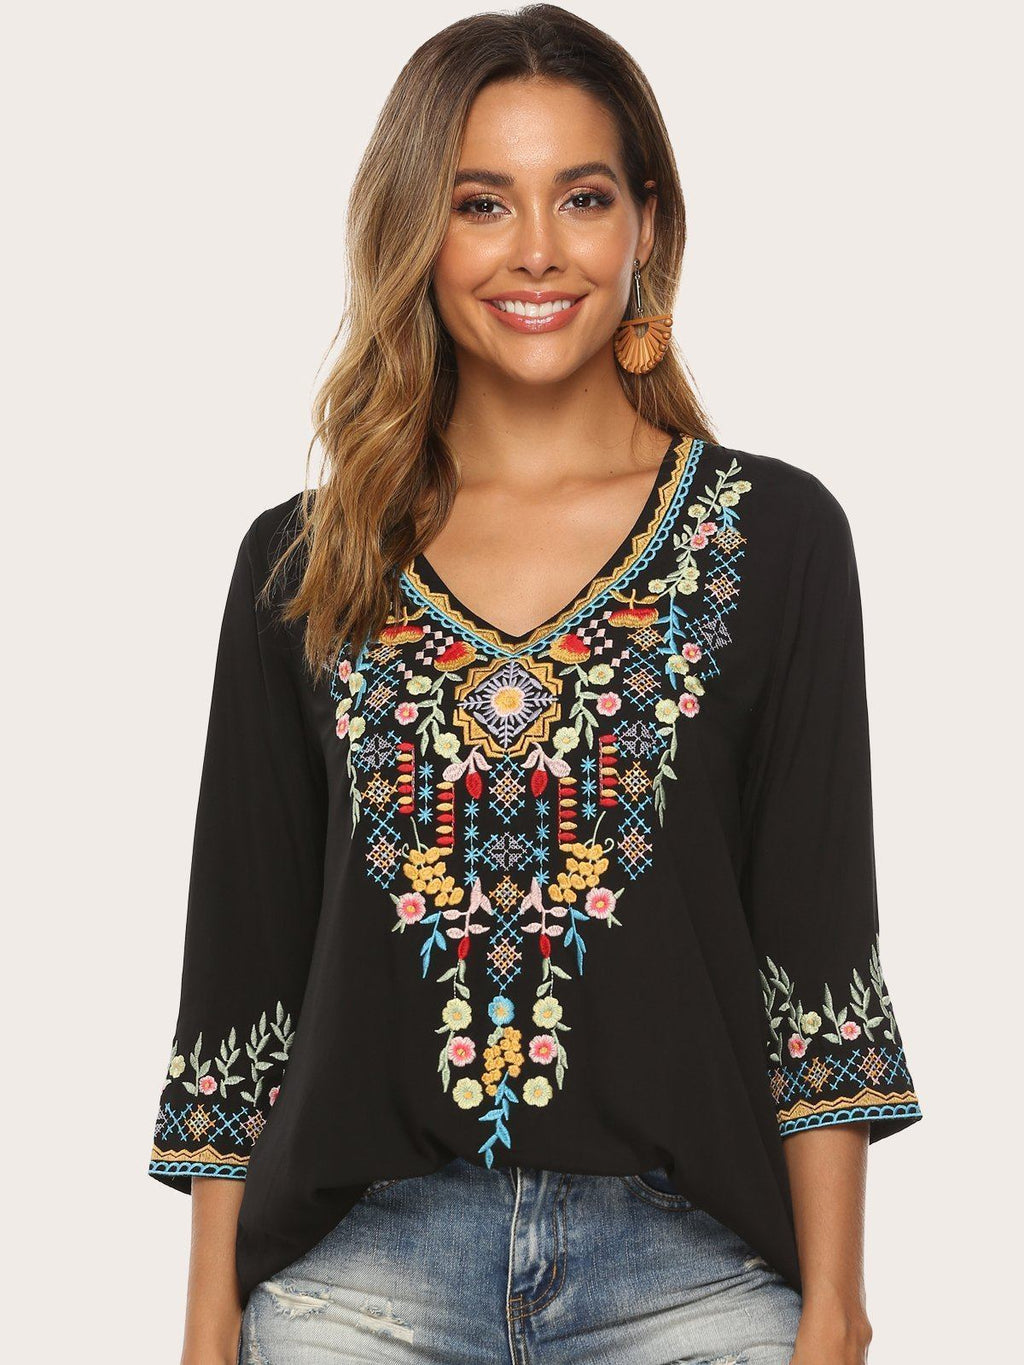 Elegant Floral Embroidery V-Neck 3/4 Sleeves Blouses Best Gifts for the Season & Christmas - LuckinChic.com